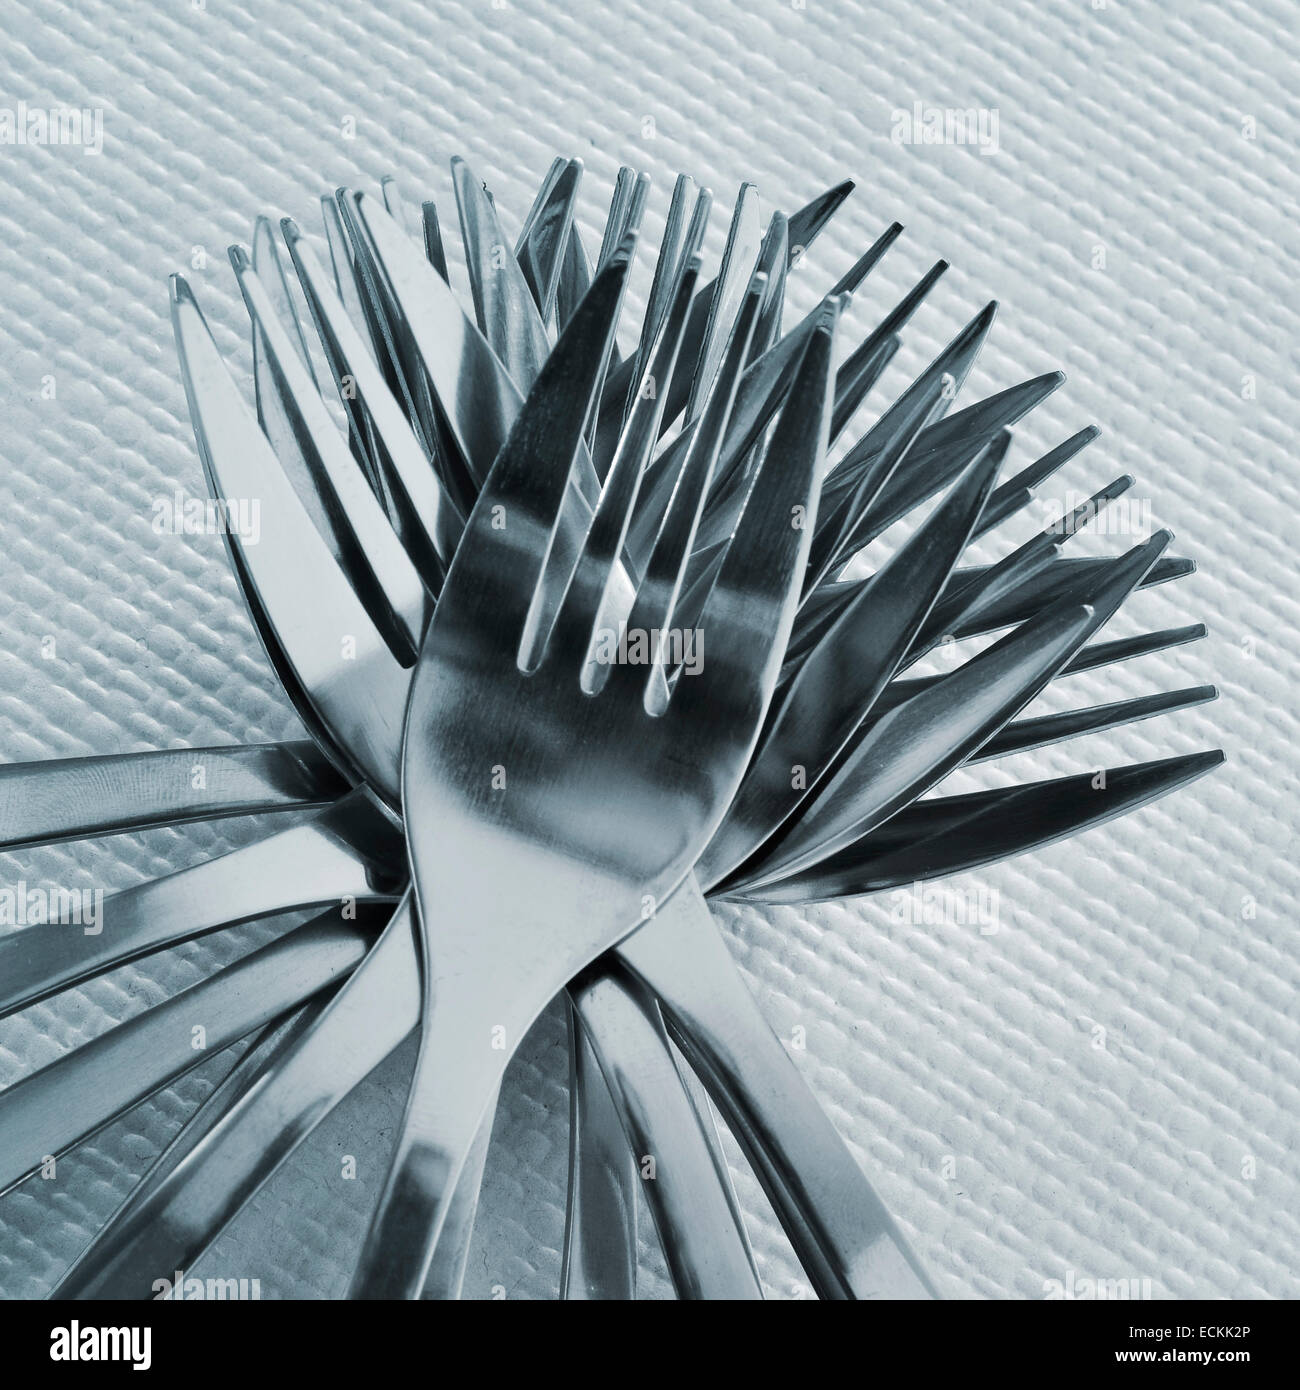 closeup of a pile of forks on a set table with a textured tablecloth - Stock Image